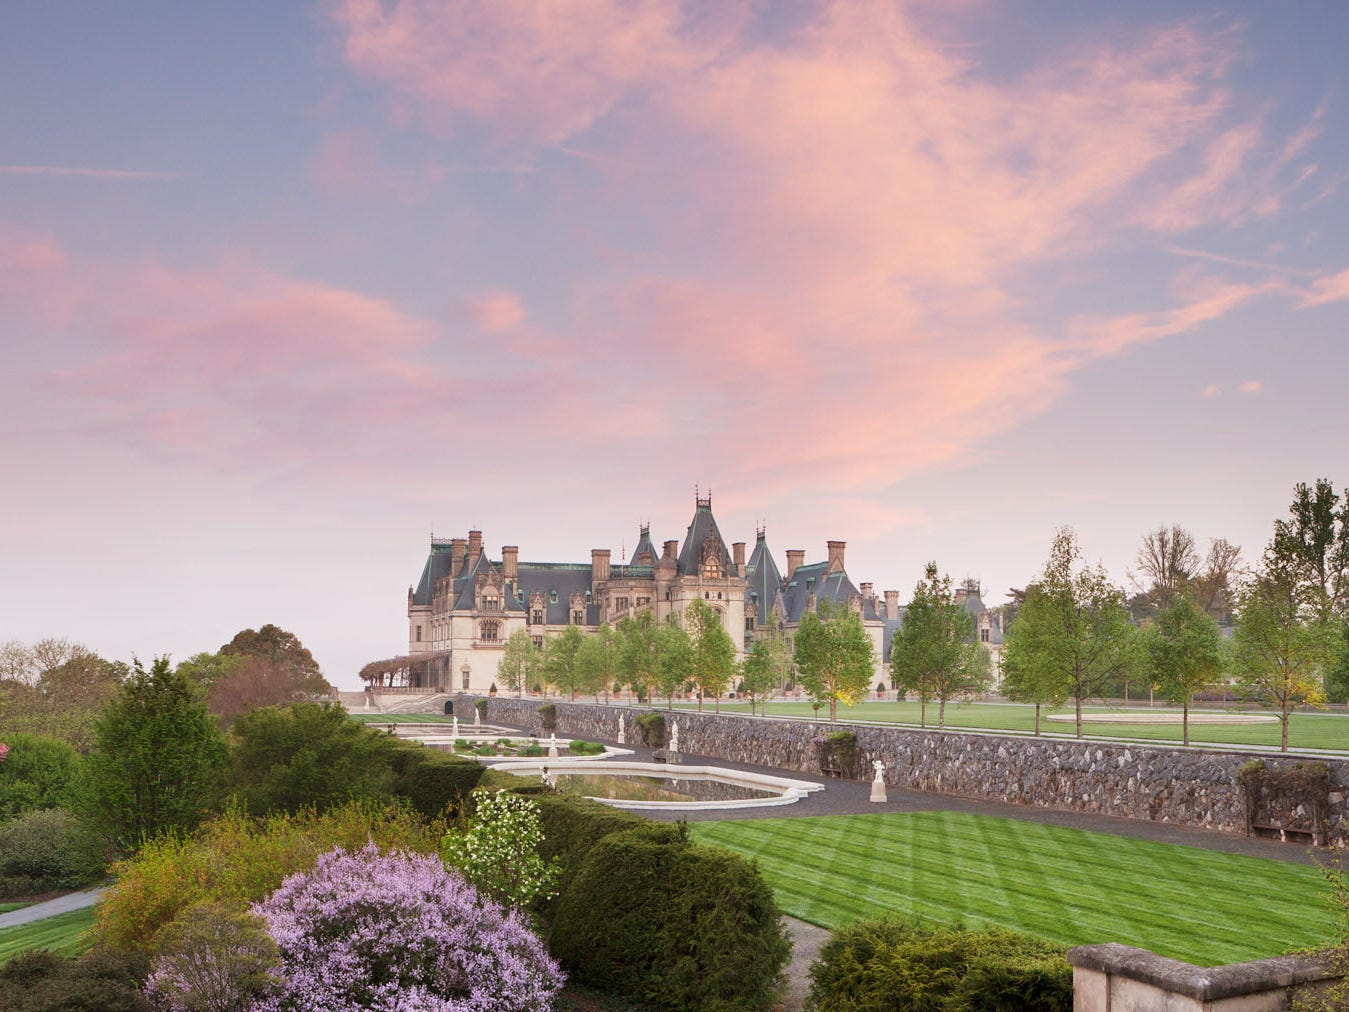 The Italian Garden at Biltmore Estate, along with flowering trees in the Shrub Garden.